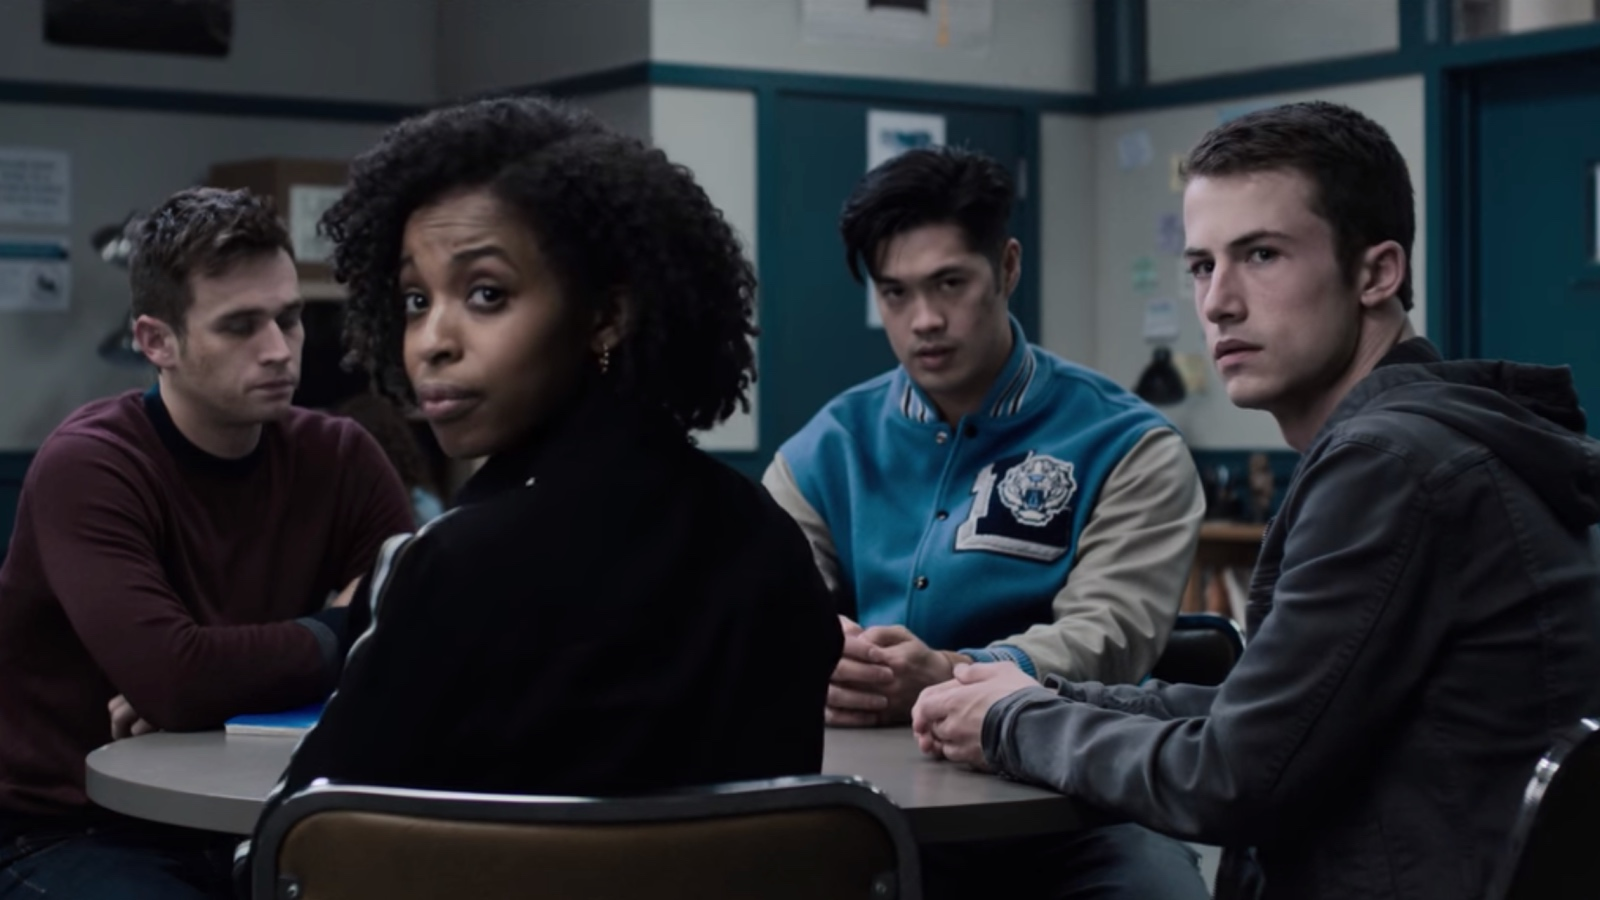 13 reasons why season 3 review